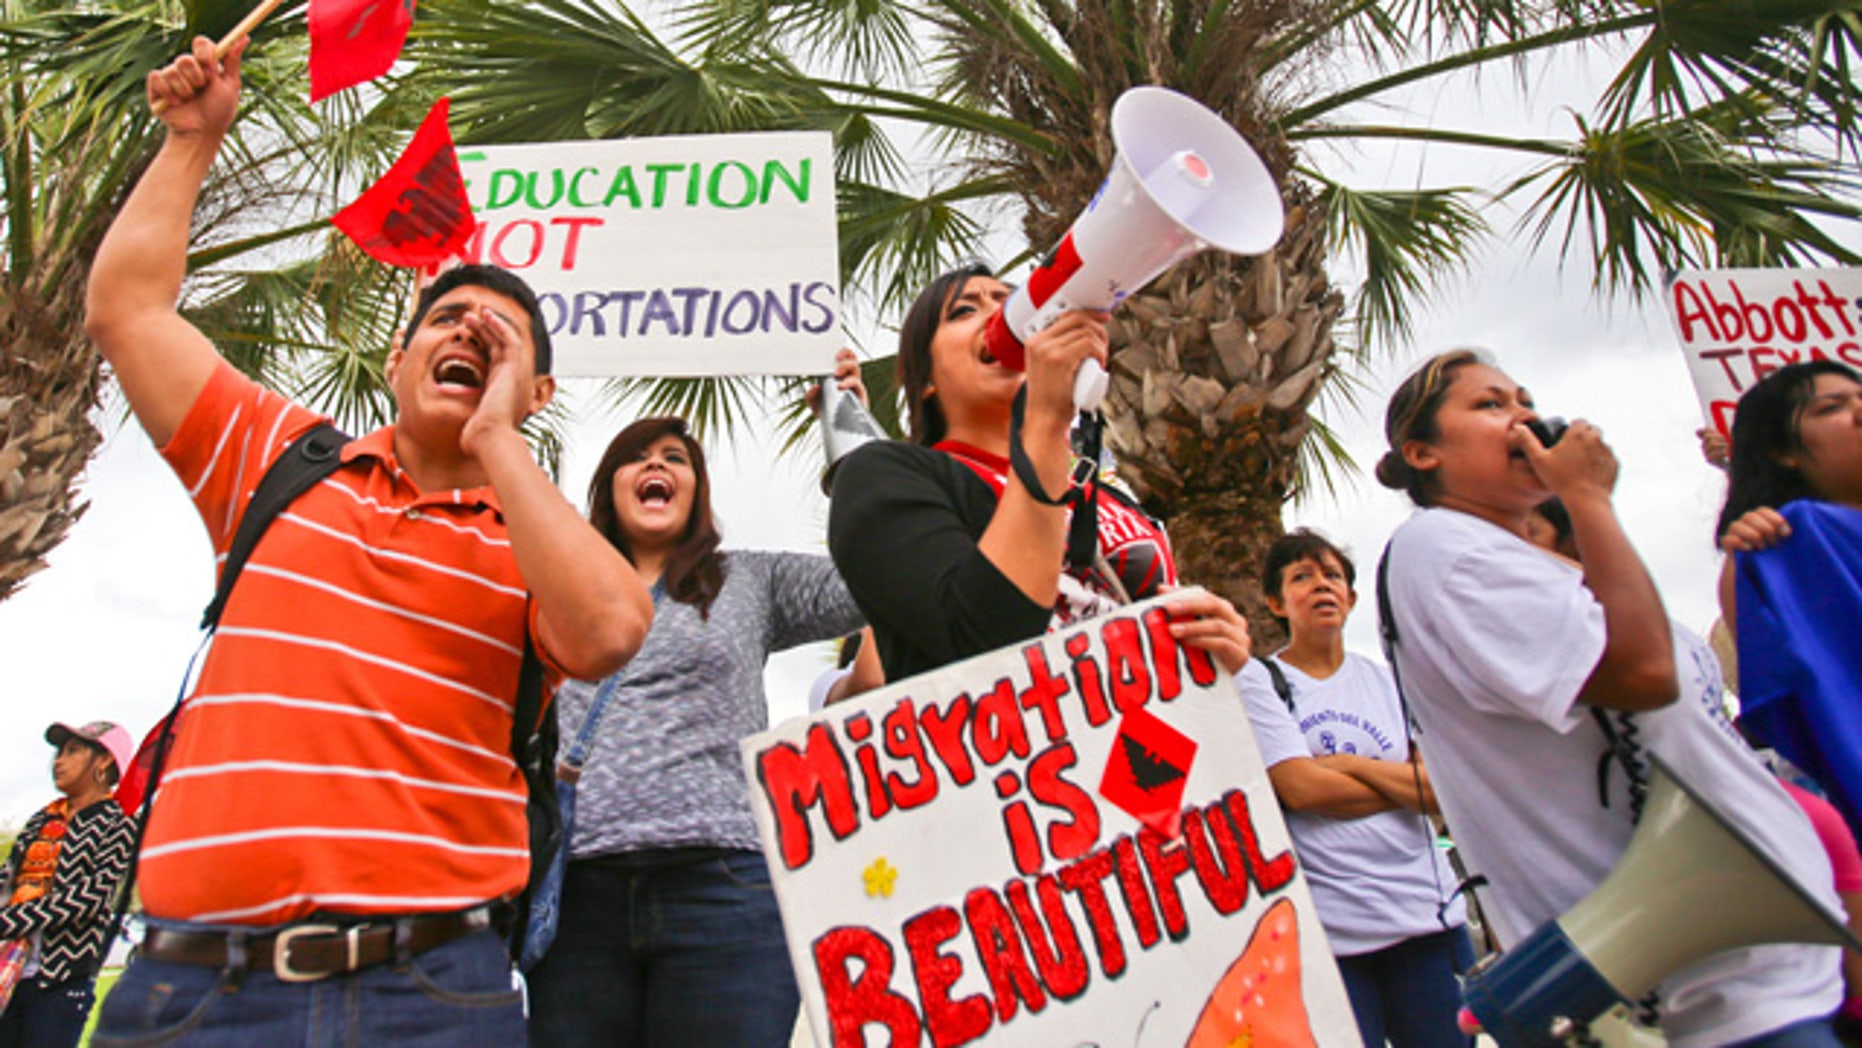 March 19, 2015: Over a hundred protesters stand outside of the federal courthouse in Brownsville, Texas to protest a federal judge's hold on President Obama's executive action on immigration. (AP Photo/The Brownsville Herald, Yvette Vela)